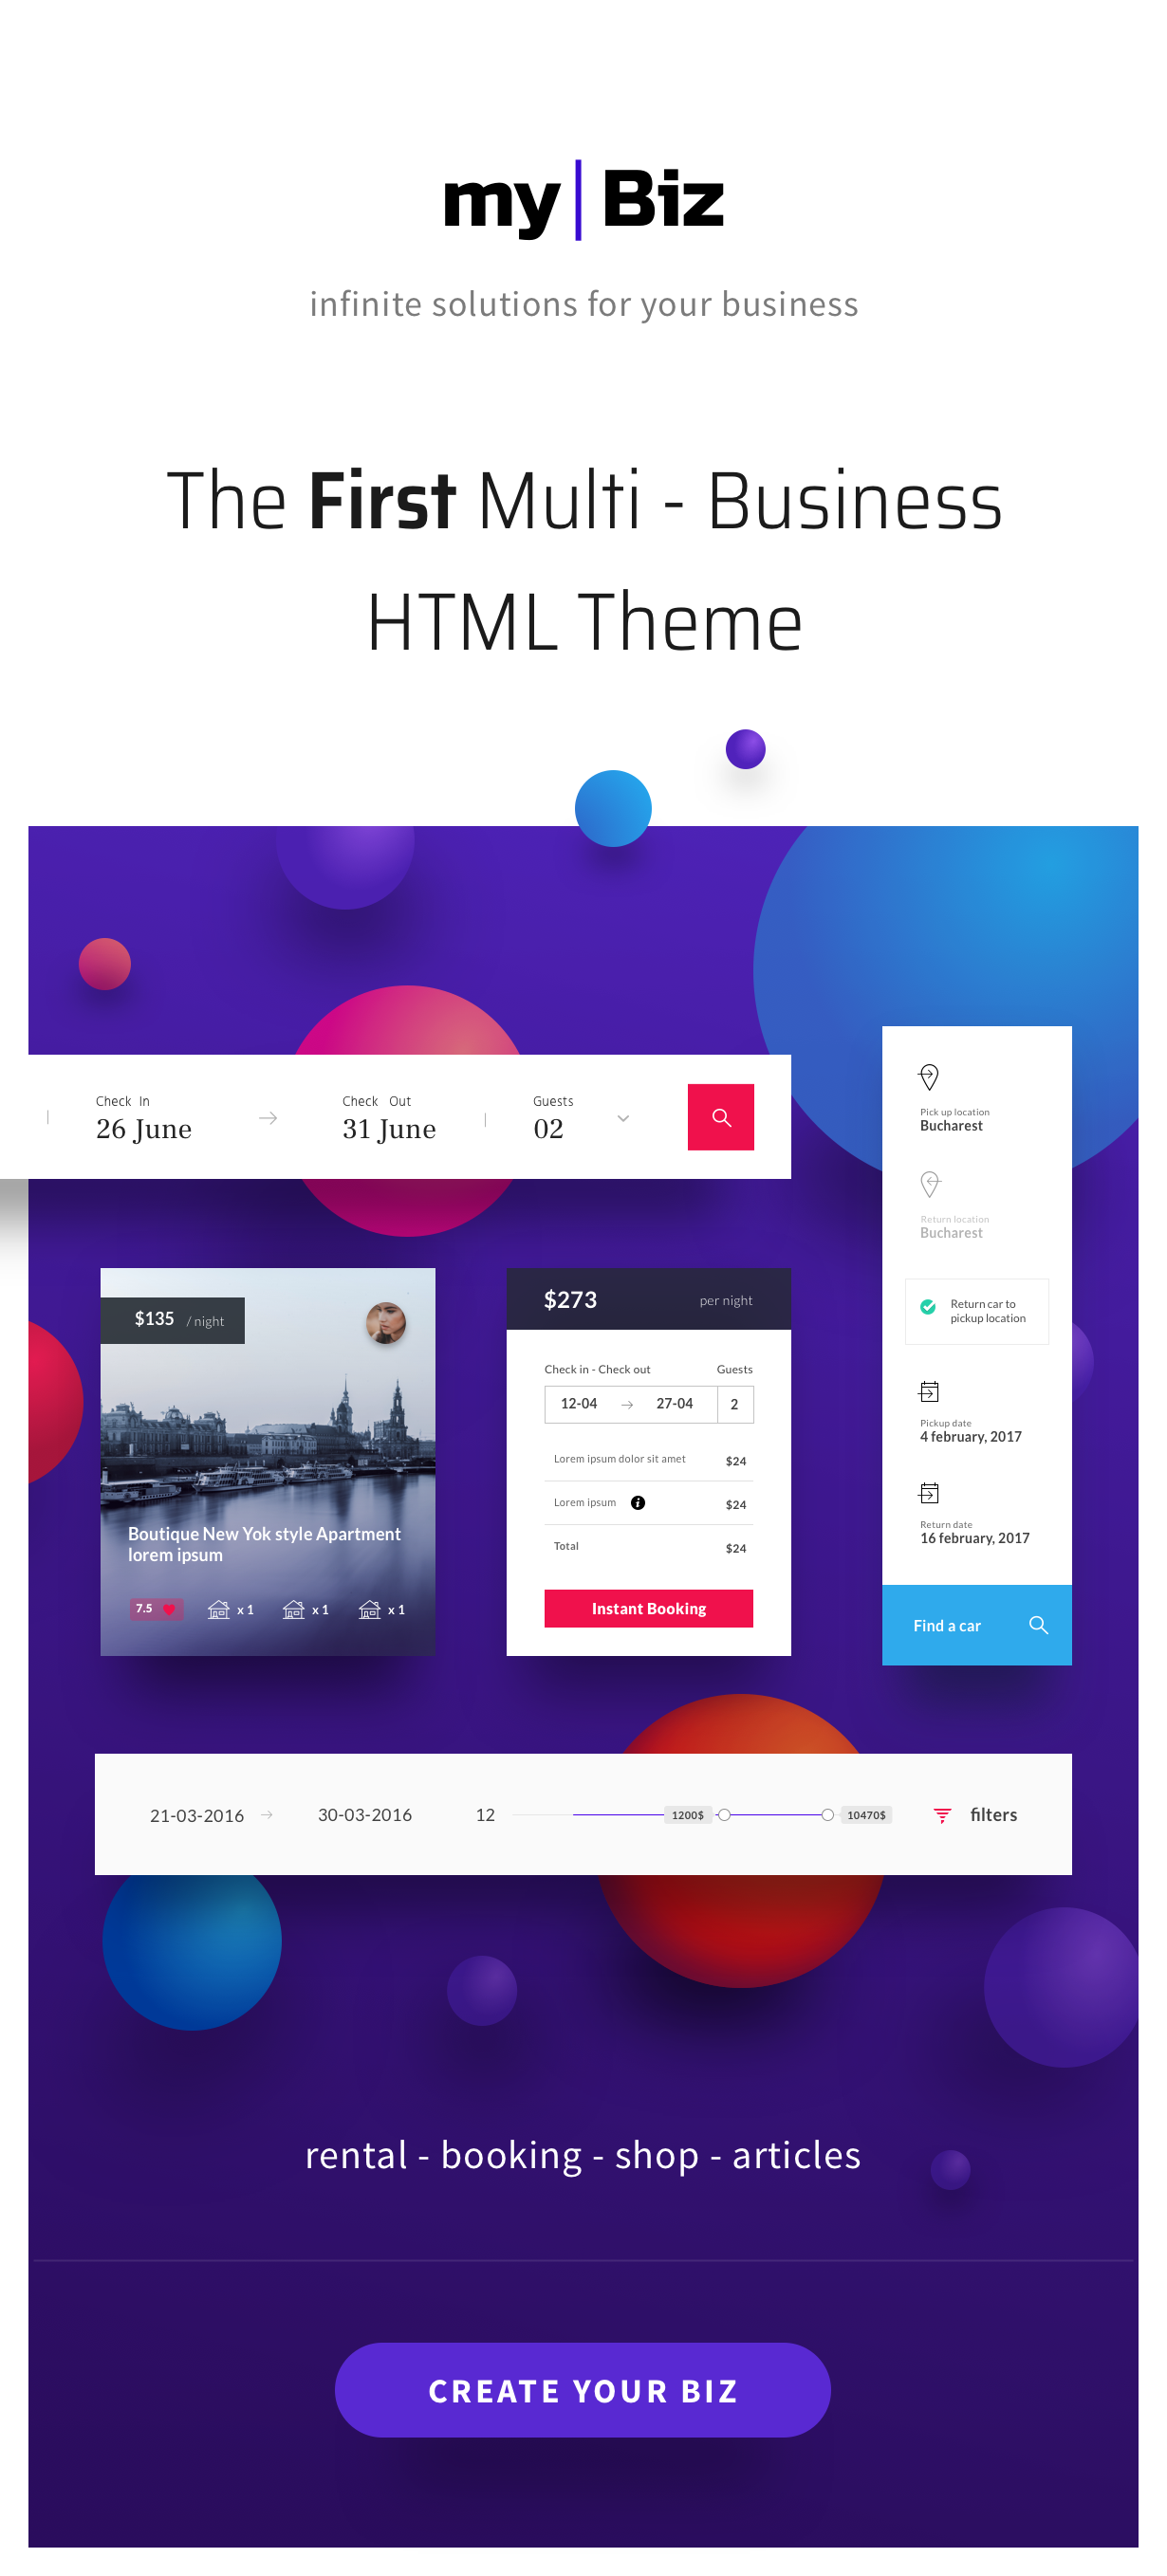 MyBiz - The First Multi-Business & Booking HTML Theme - 1